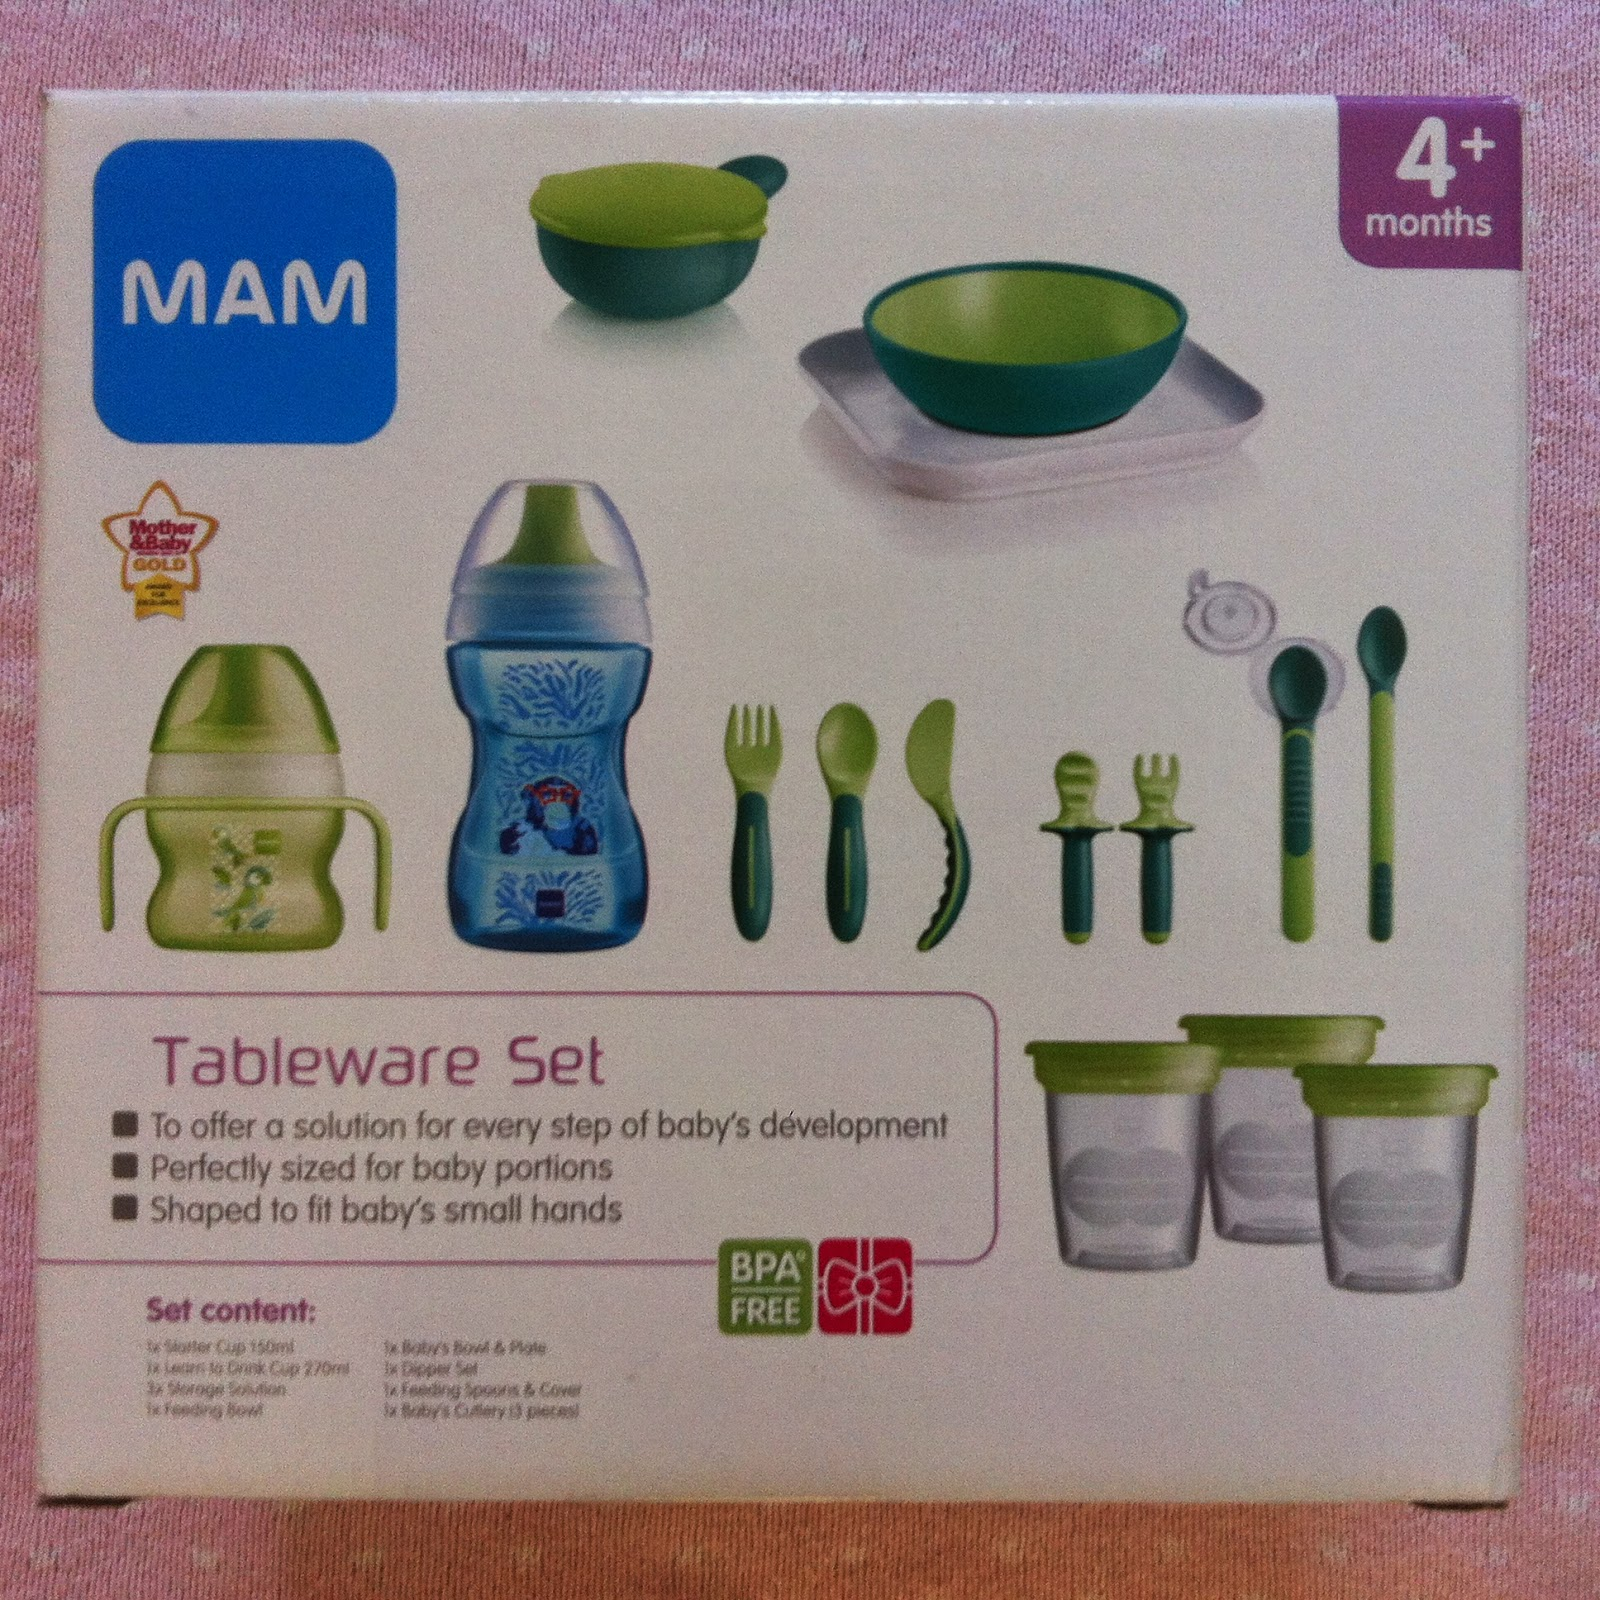 The MAM Complete Tableware Set ( £19.99 at BabiesRUs) offers a superb set of items for every step of your babyu0027s development. & My Little L: MAM tableware set review